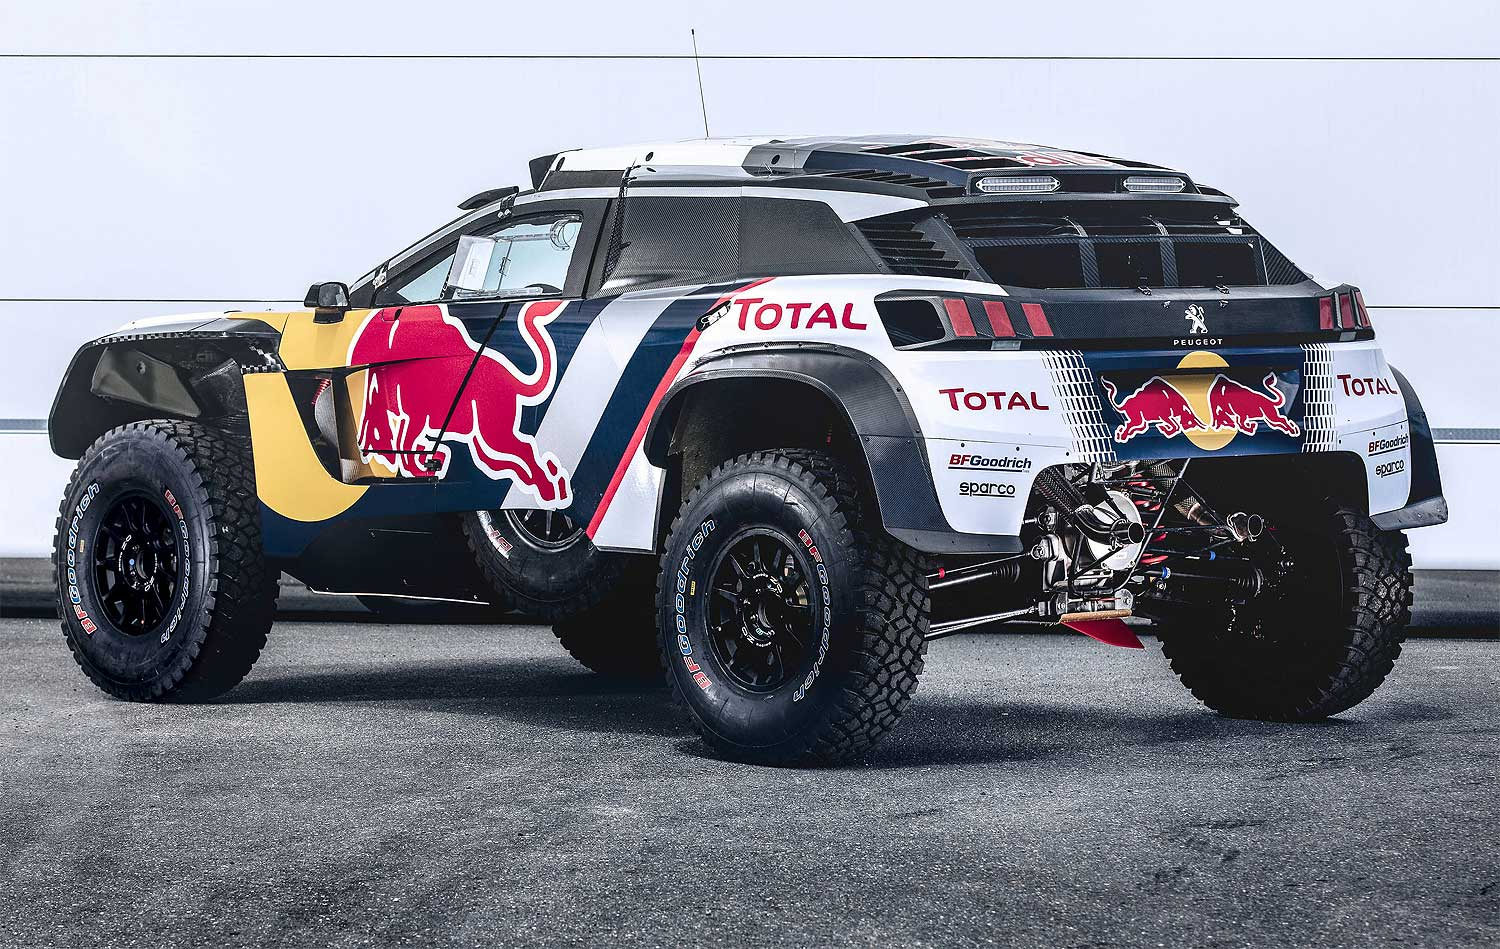 dakar rally 2019 easy rally will be new owner of three peugeot 3008 dkr maxi. Black Bedroom Furniture Sets. Home Design Ideas